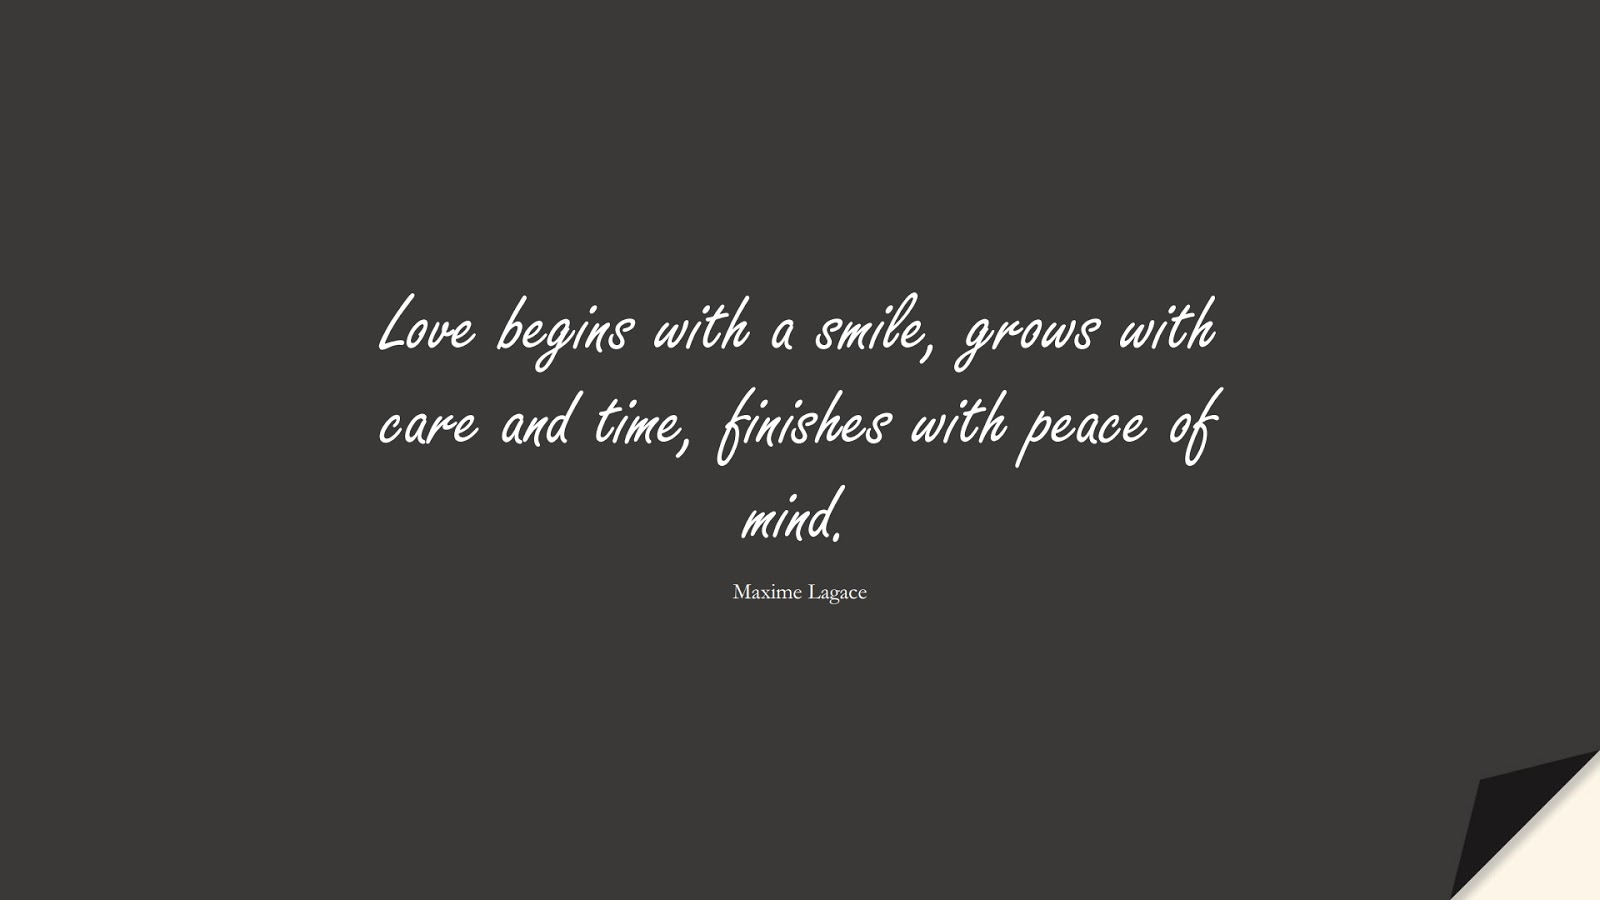 Love begins with a smile, grows with care and time, finishes with peace of mind. (Maxime Lagace);  #LoveQuotes